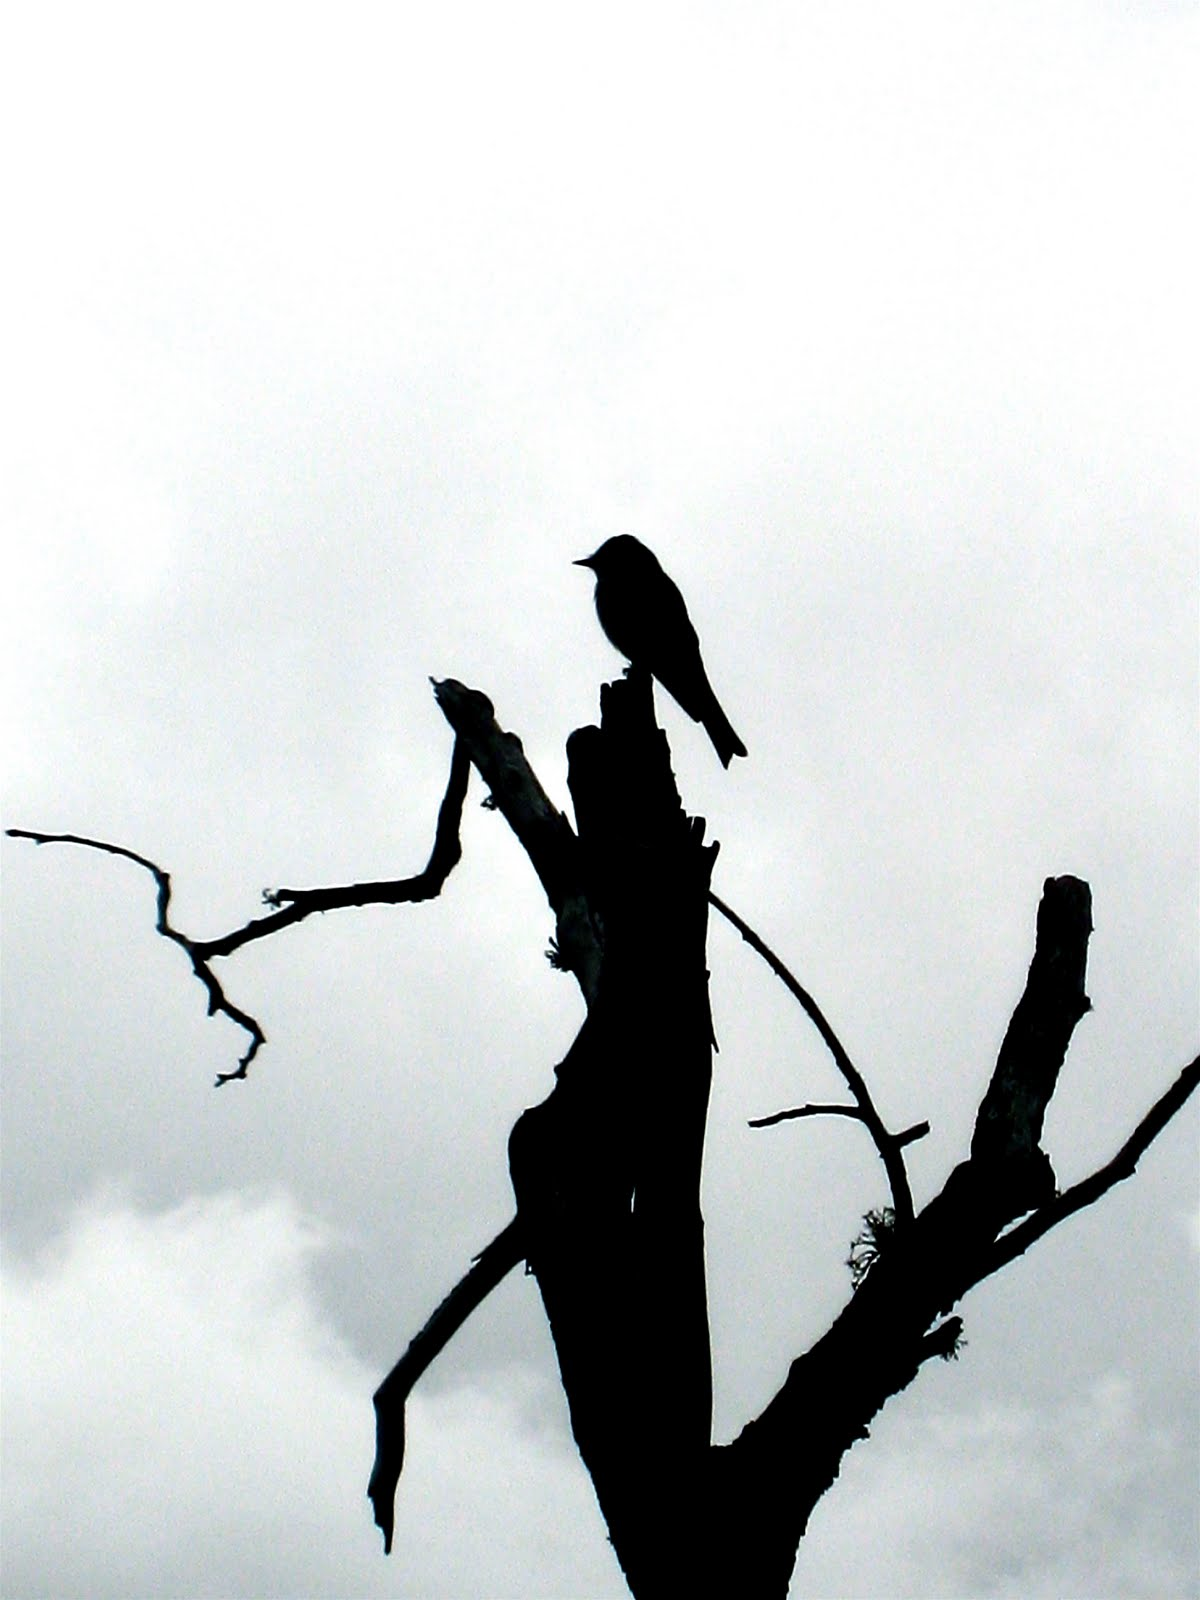 Sitting Love Bird Silhouette | www.imgkid.com - The Image ...